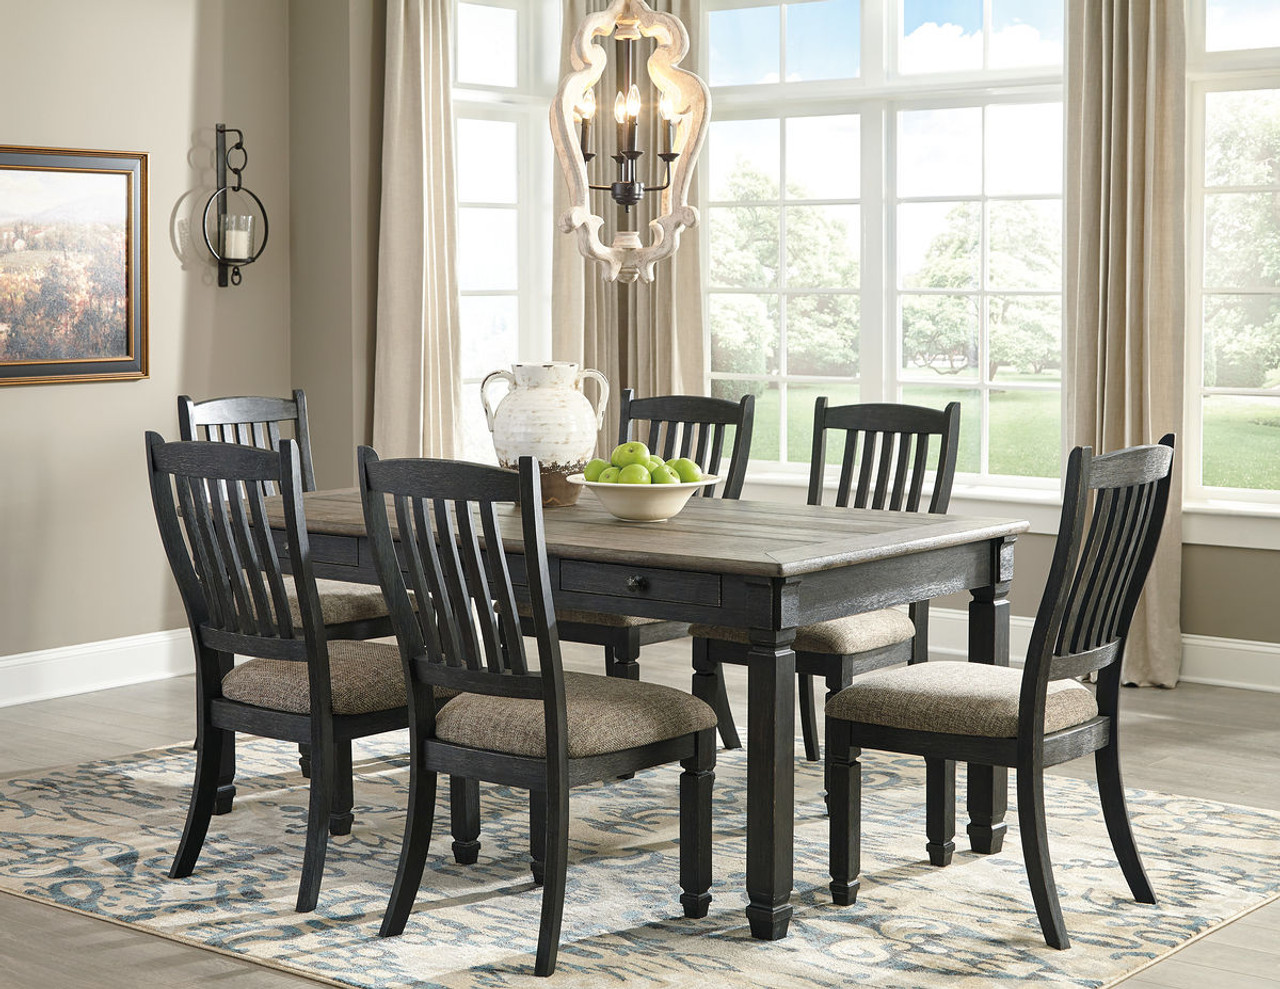 The Tyler Creek Black Gray 7 Pc Rectangular Dining Room Table 6 Uph Side Chairs Available At Barnett And Swann In Athens Al